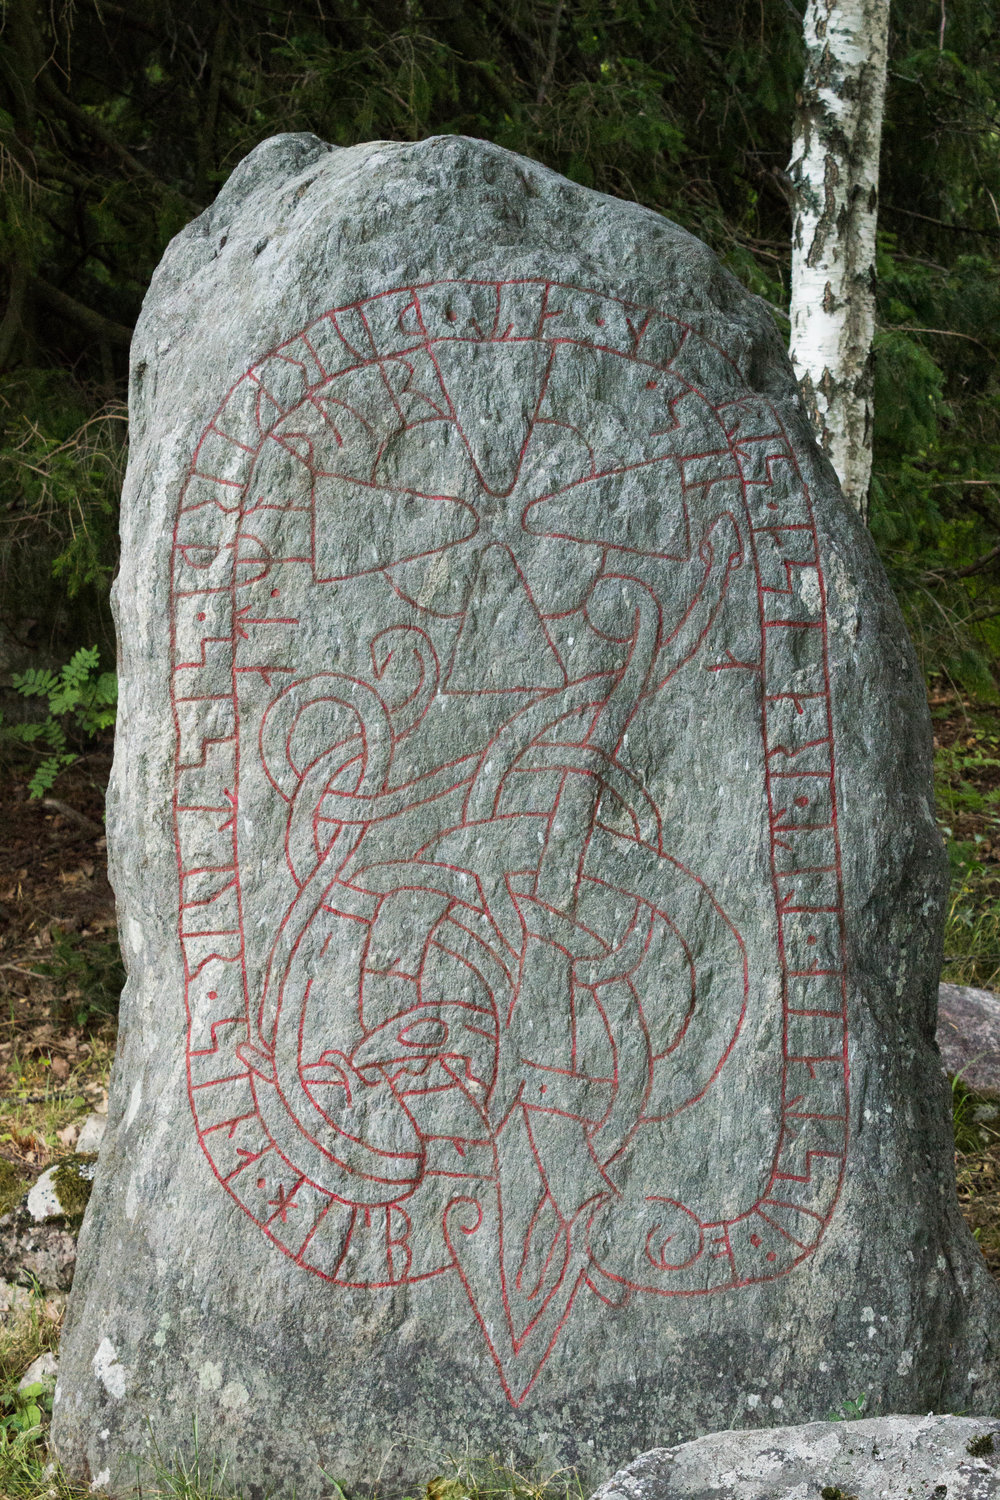 The design on the rune stone is over 1000 years old